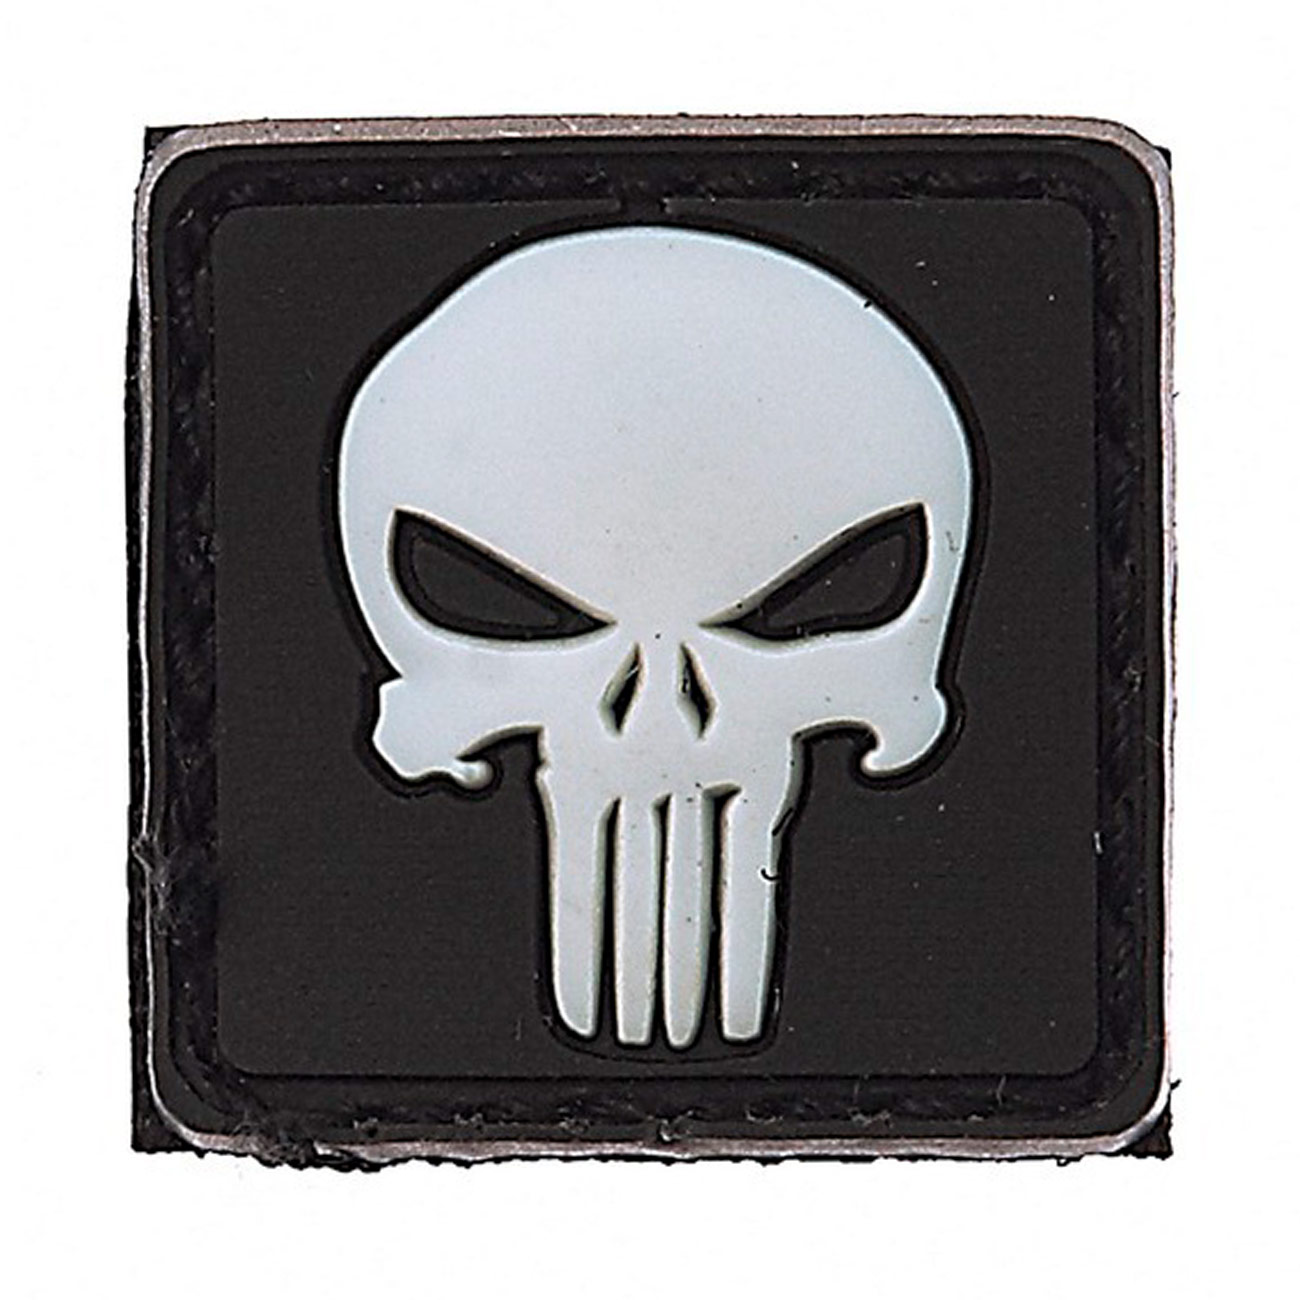 3D Rubber Patch Punisher weiß 0